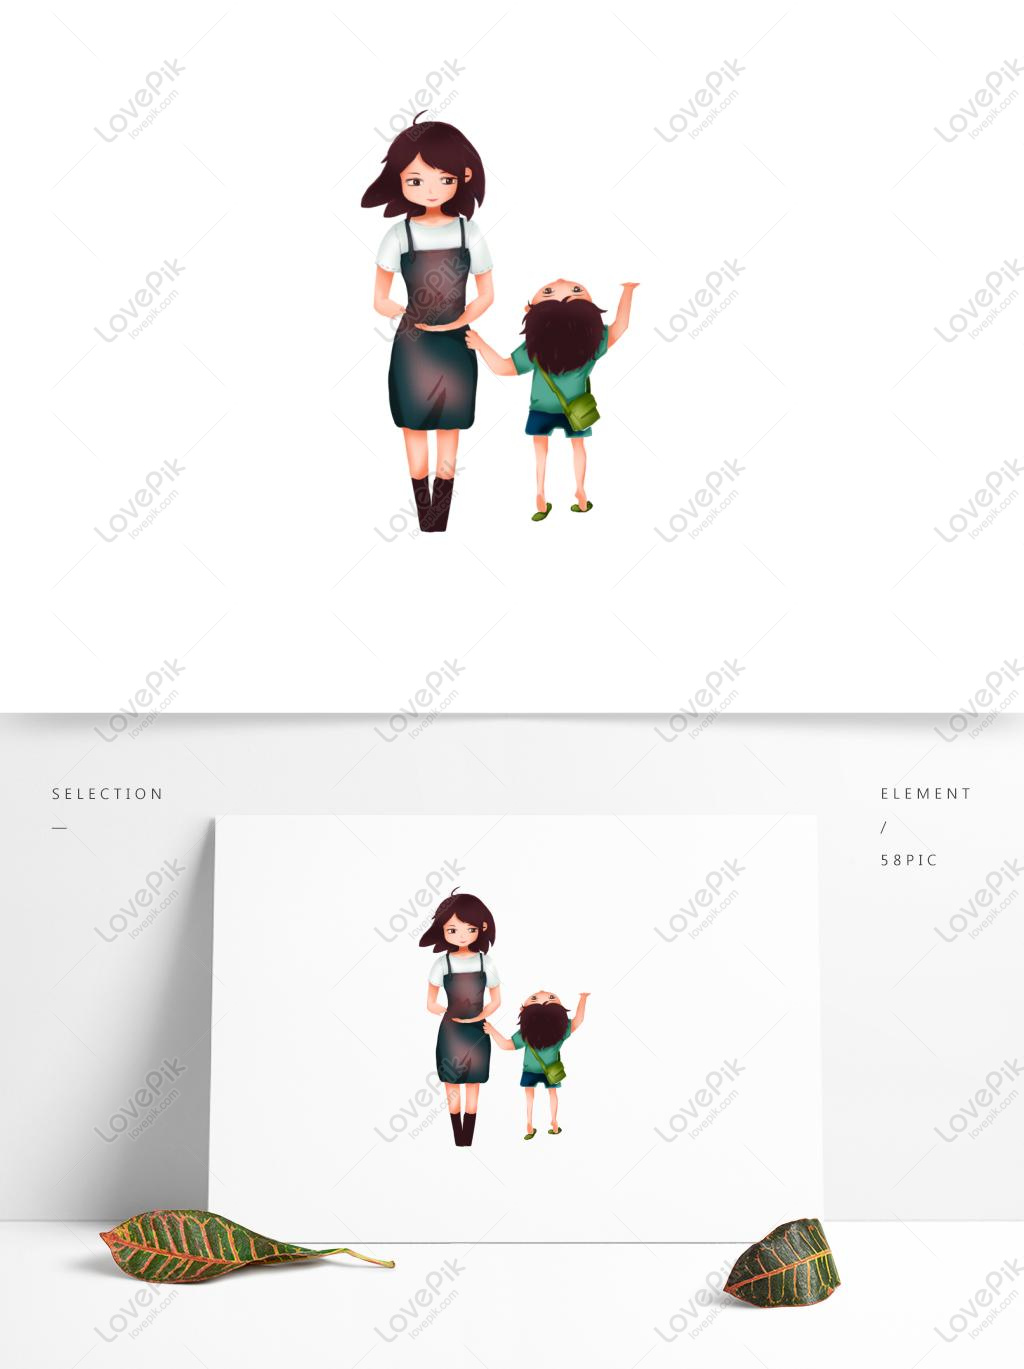 Pretty Mother And Little Boy Cartoon Element Psd Images Free Download 1369 1024 Px Lovepik Id 732364195